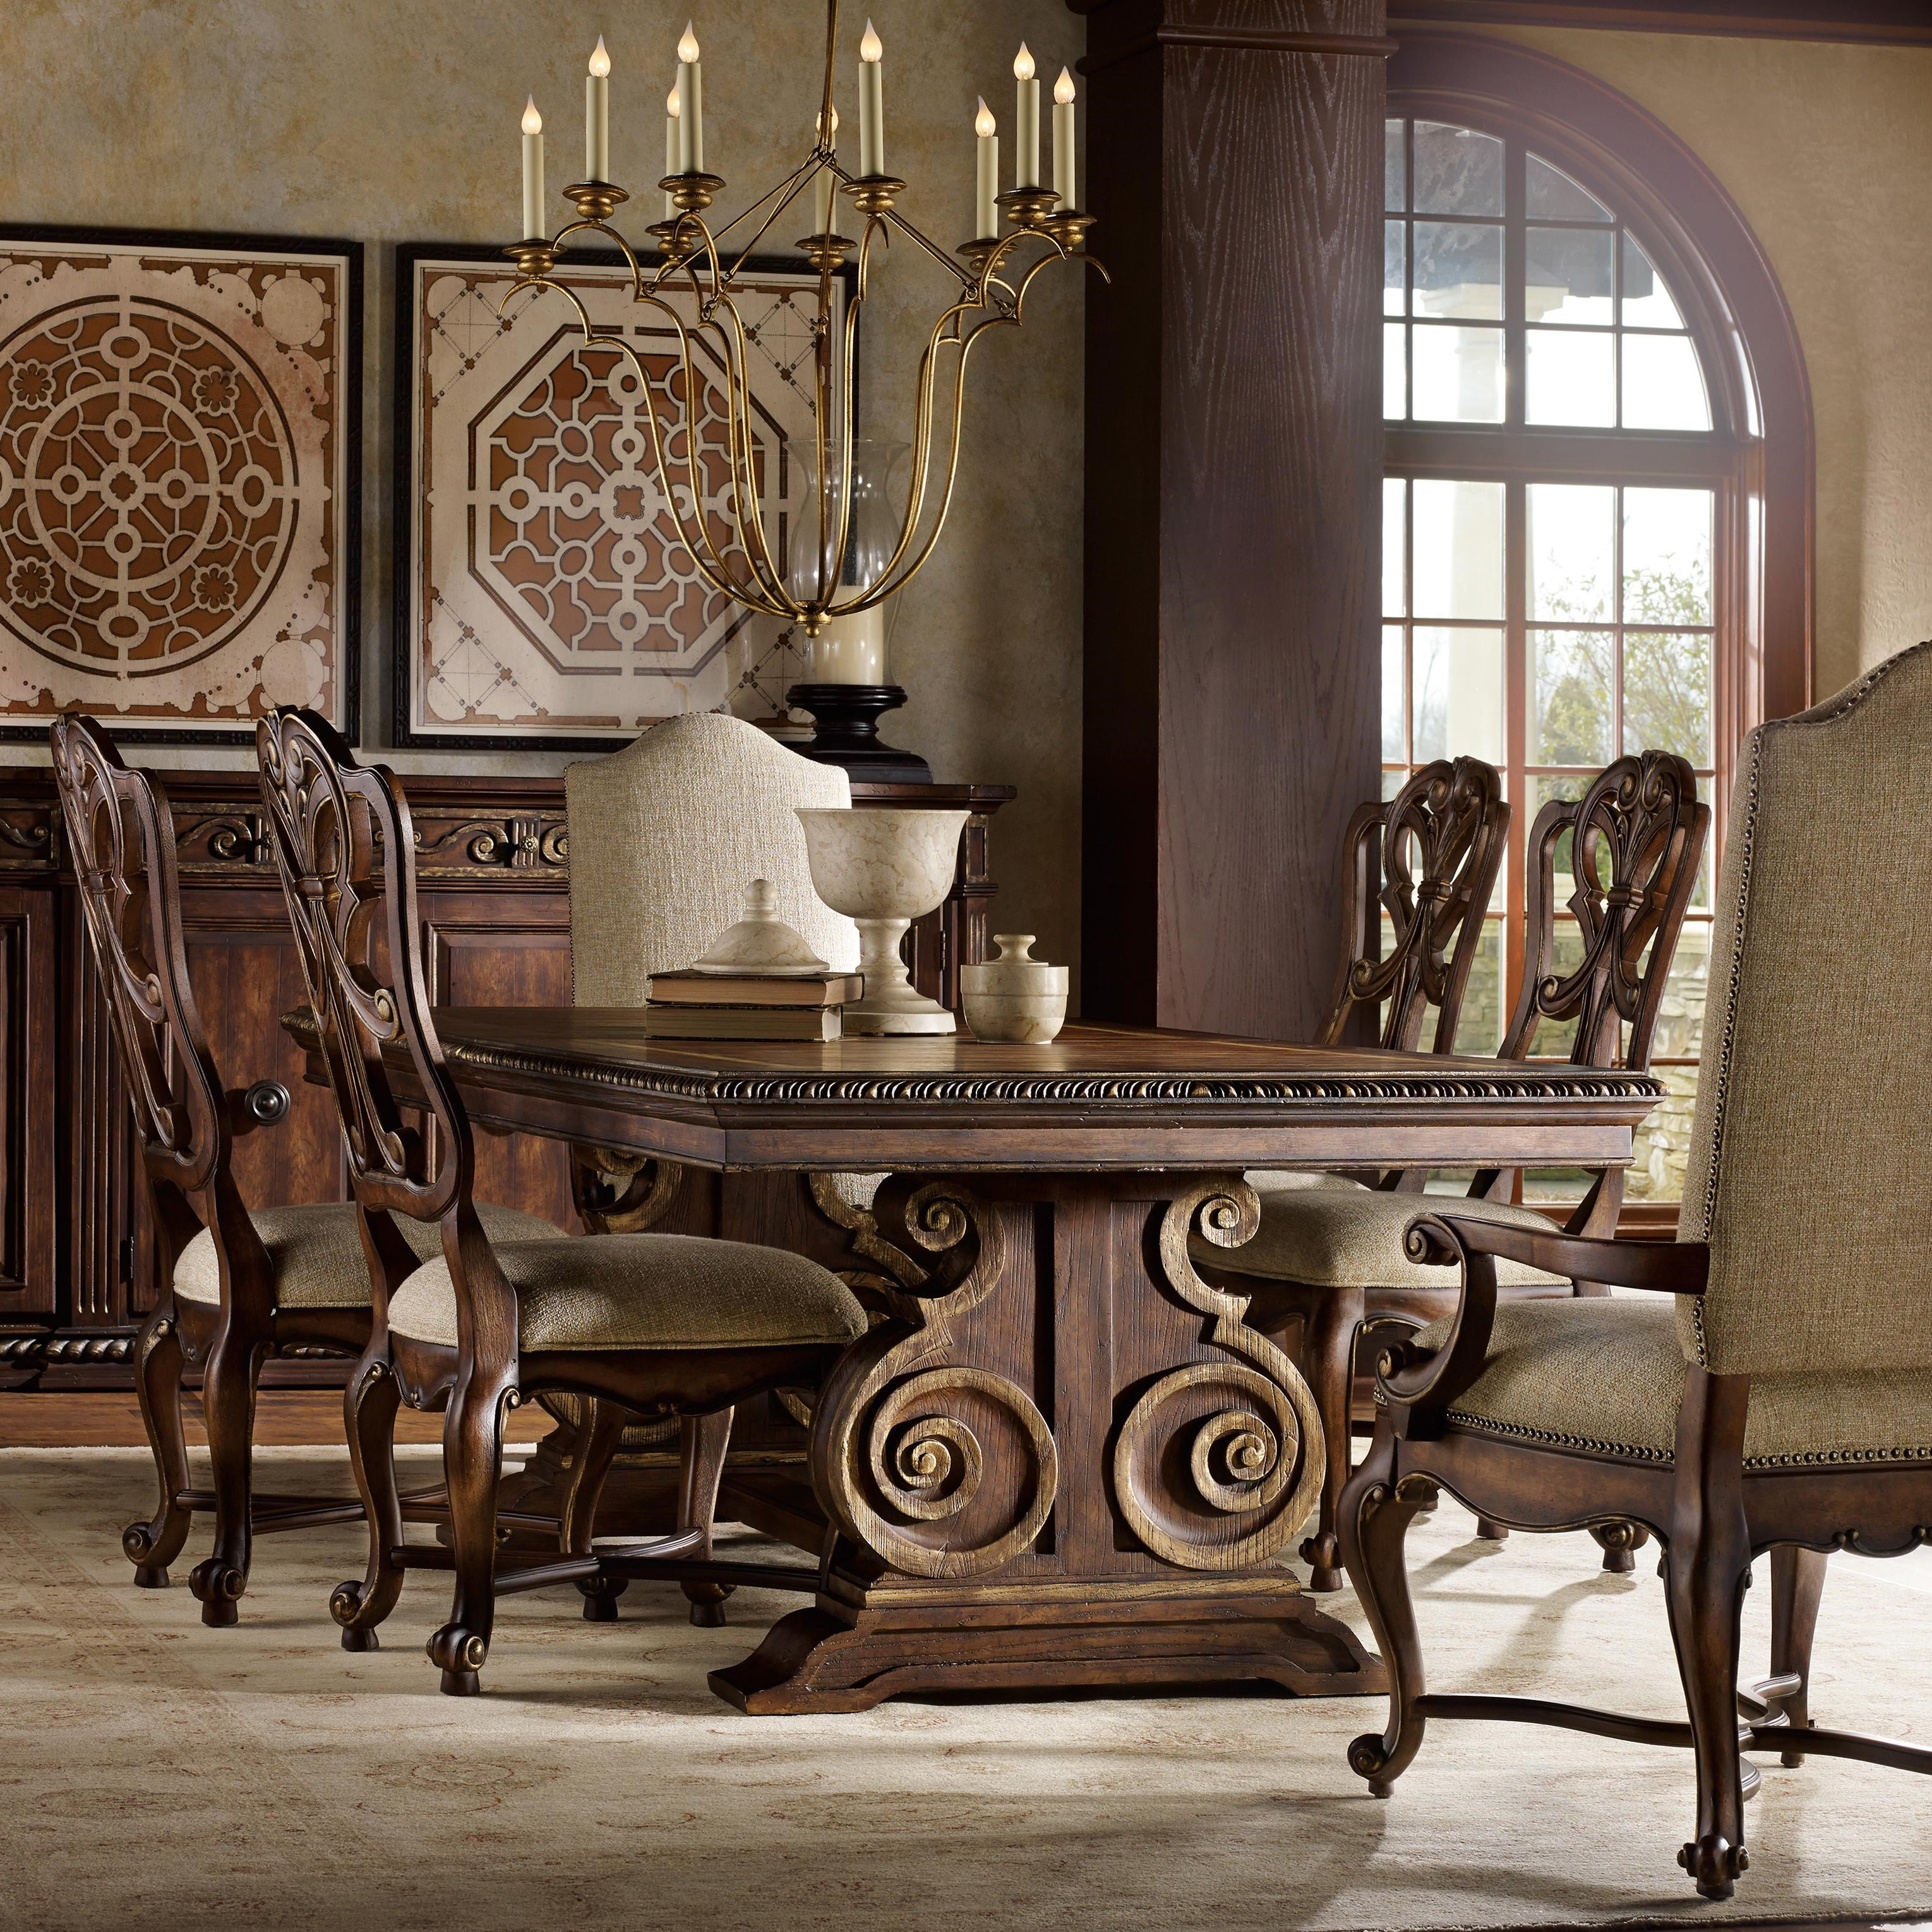 Hooker Furniture Adagio Dining Set With Rectangle Table And 6 Chairs    Belfort Furniture   Dining 7 (or More) Piece Set